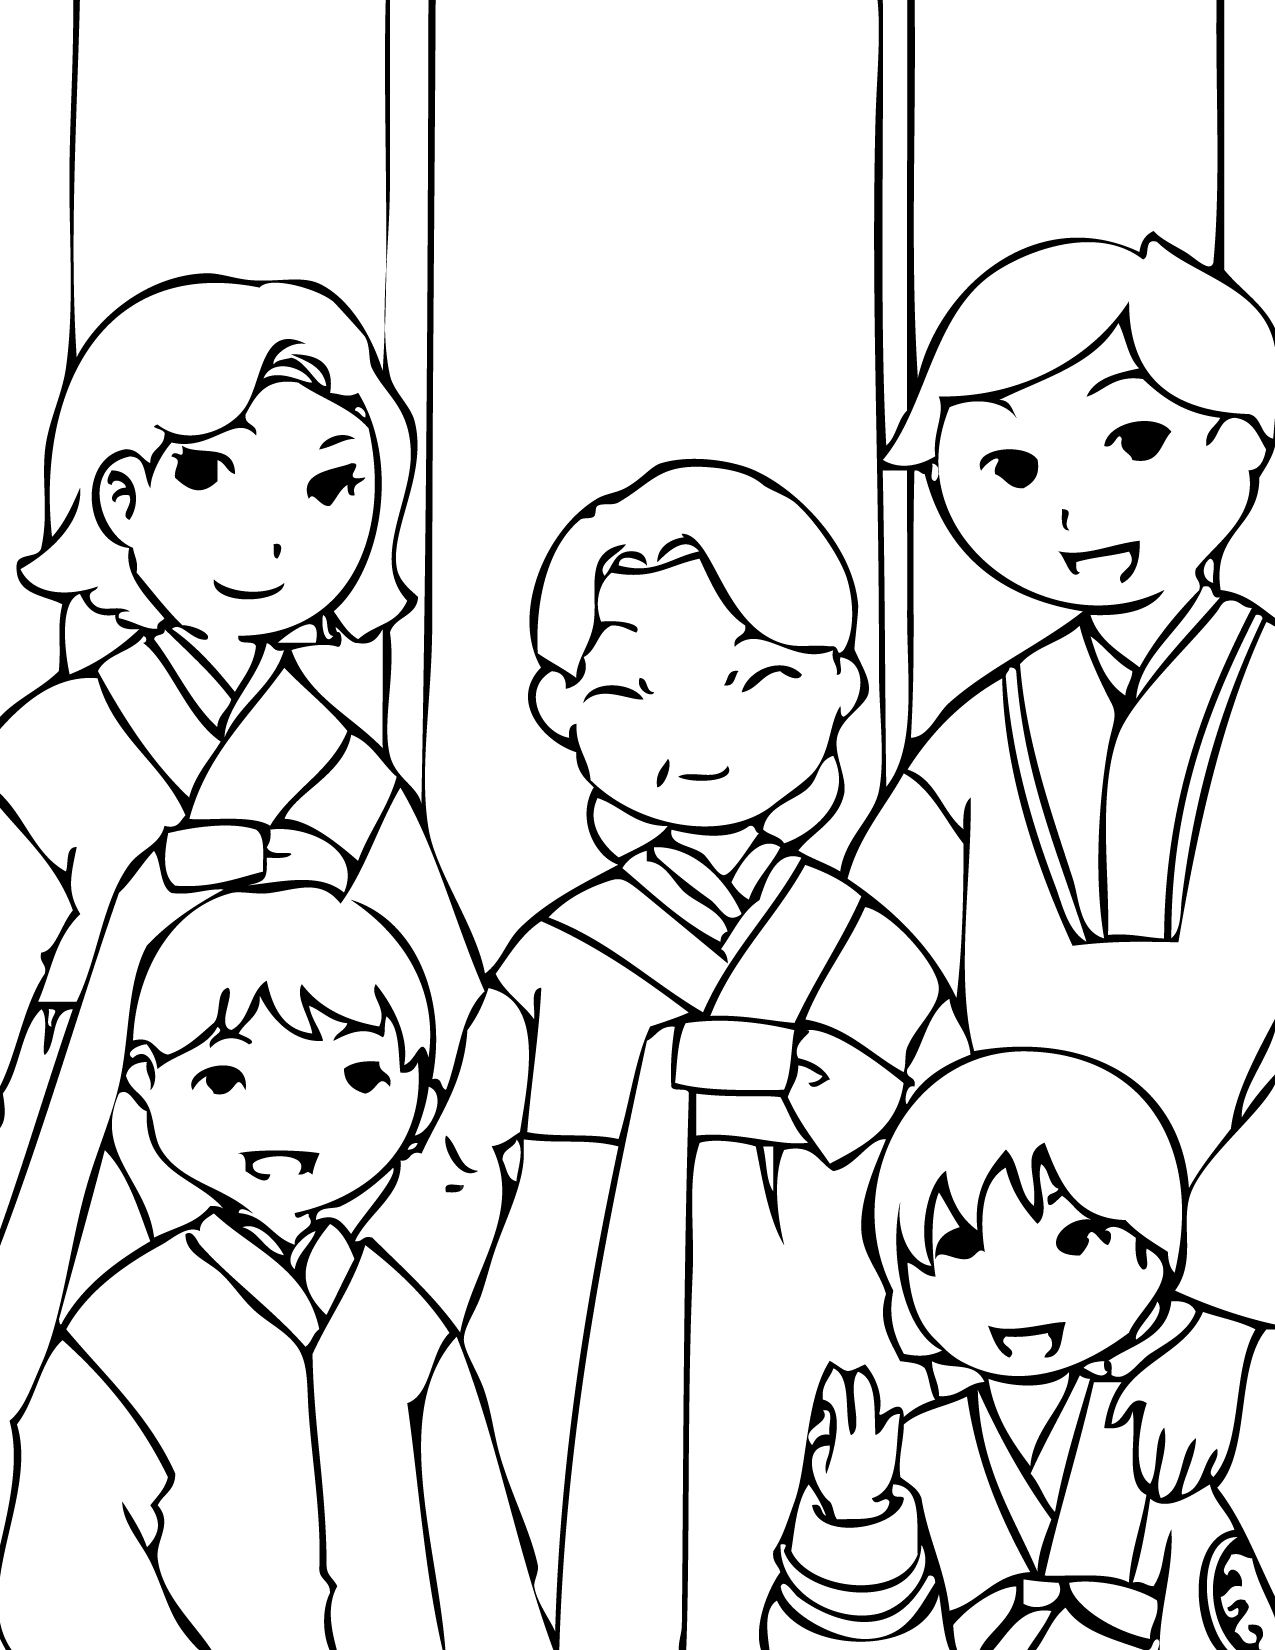 Korean New Year | Coloring Pages | Pinterest